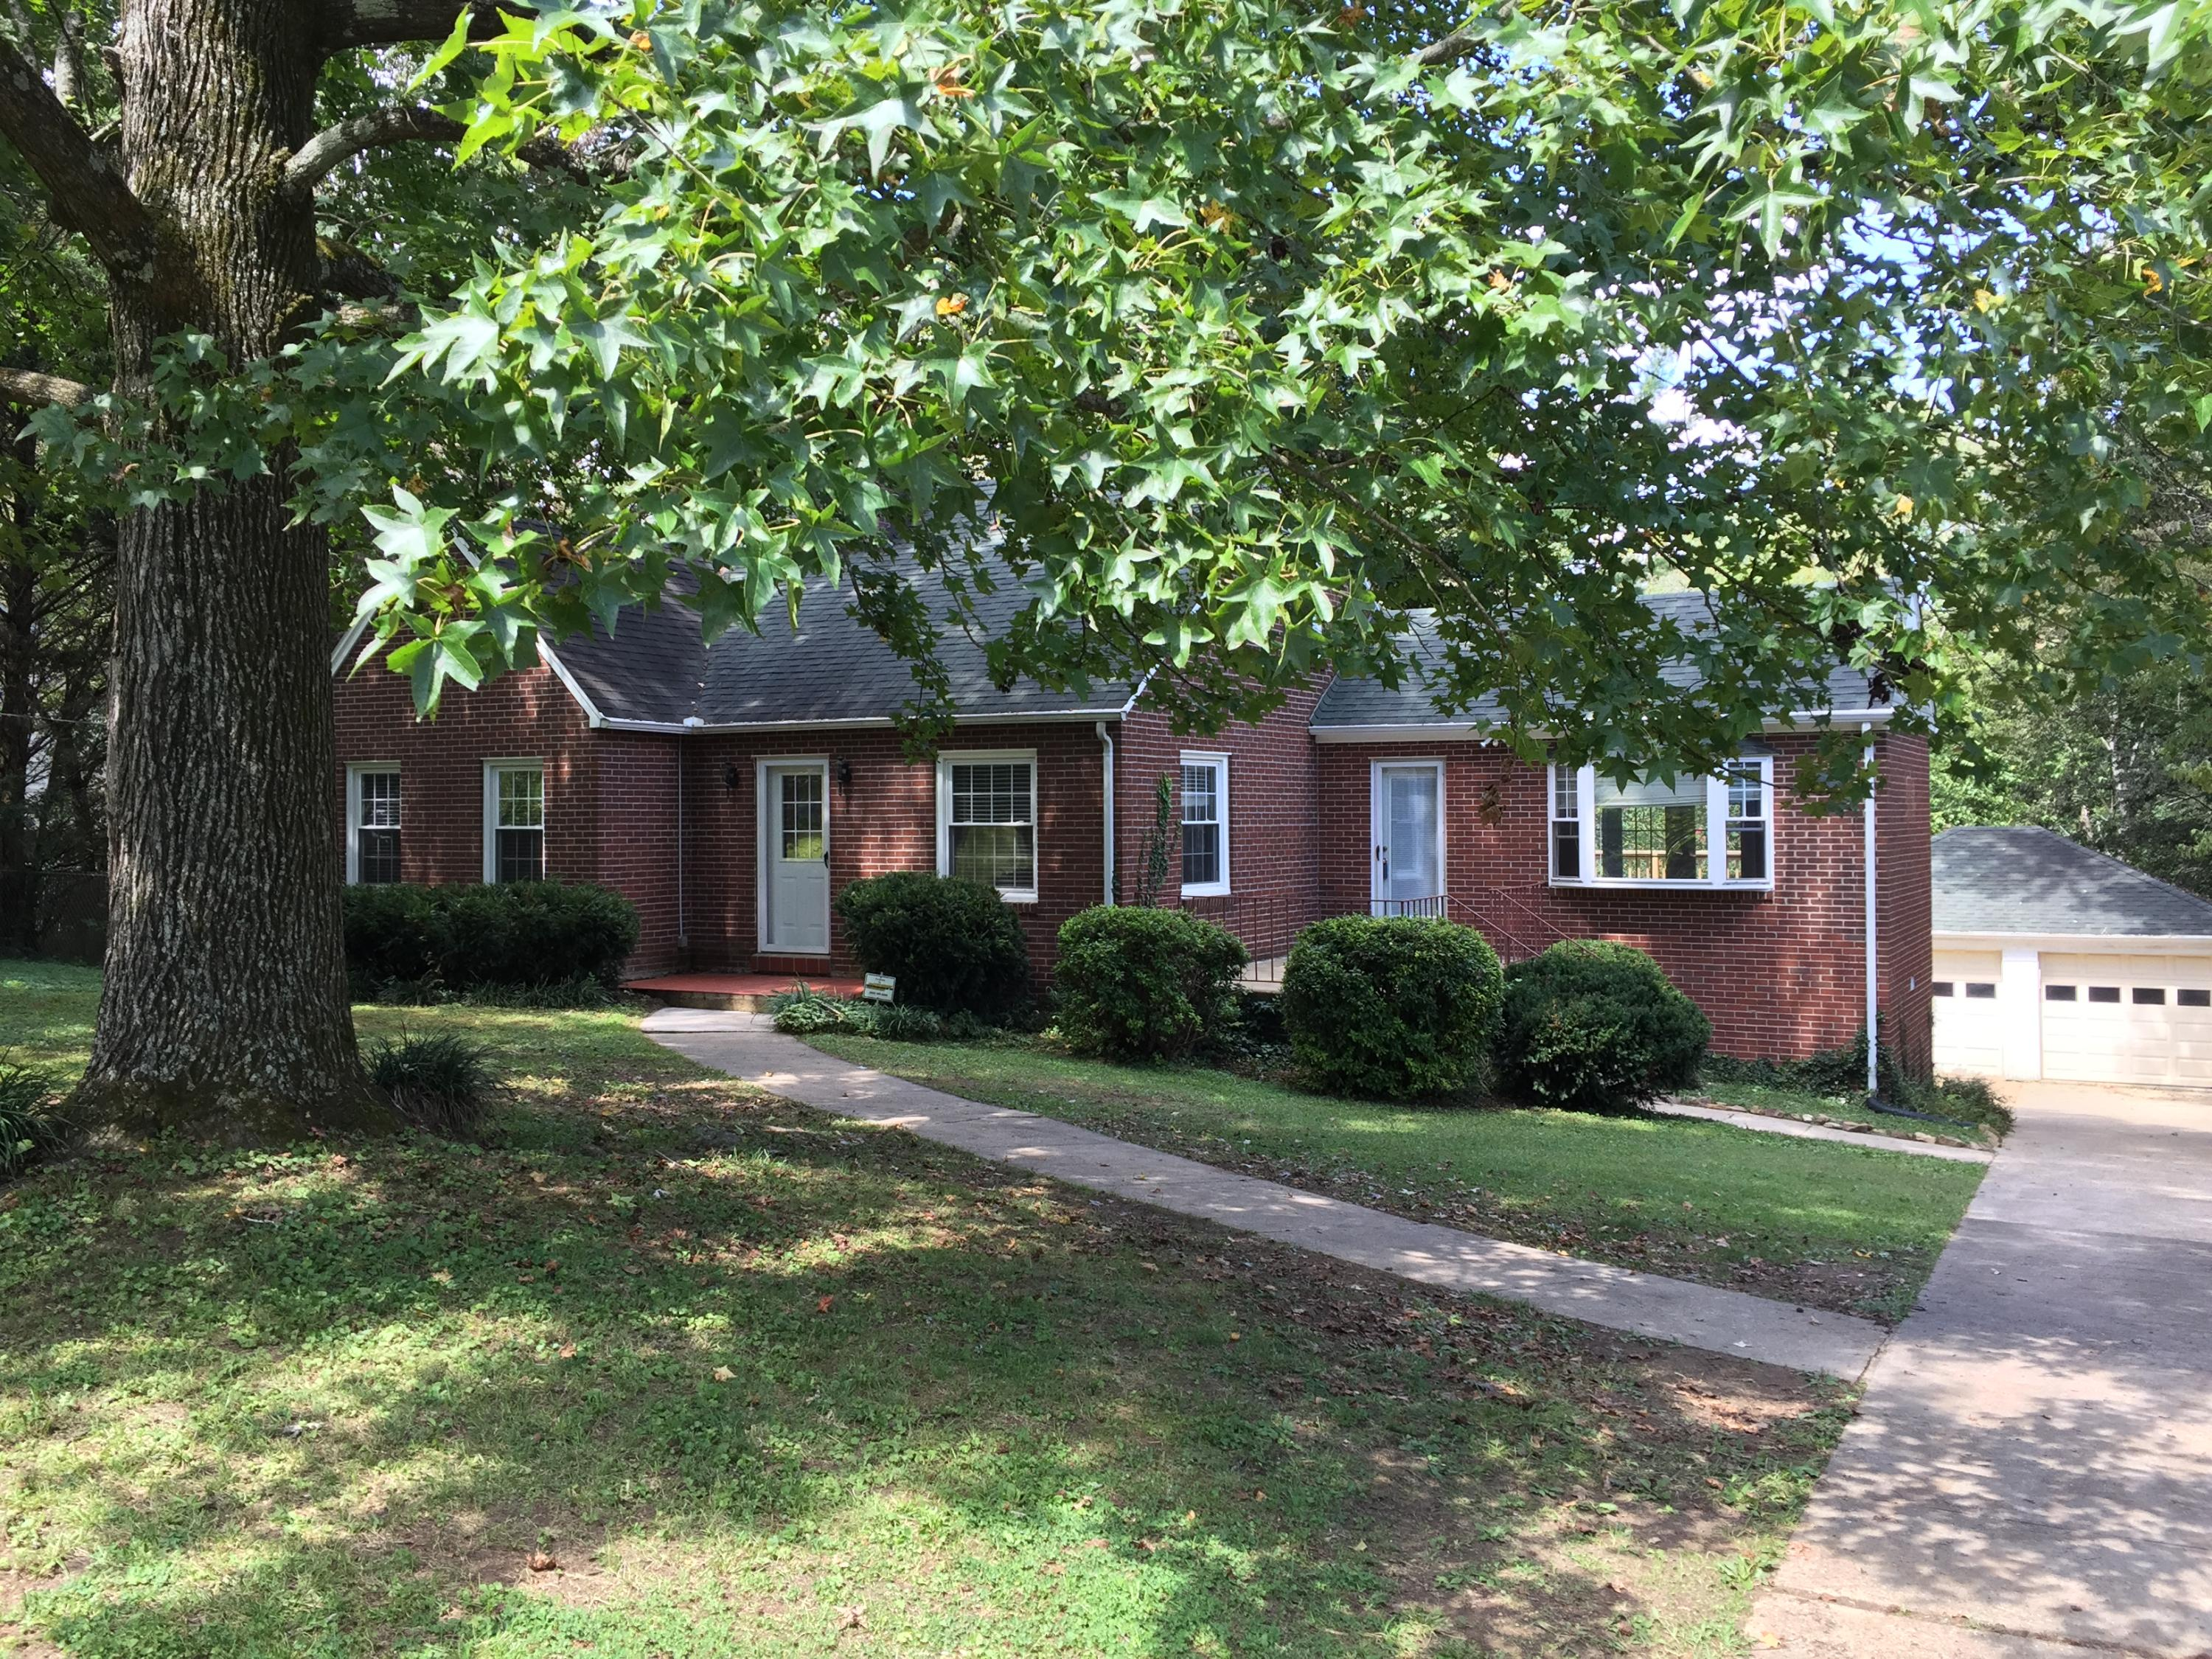 5207 Holston Drive, Knoxville, Tennessee 37914, 3 Bedrooms Bedrooms, ,2 BathroomsBathrooms,Single Family,For Sale,Holston,1015793